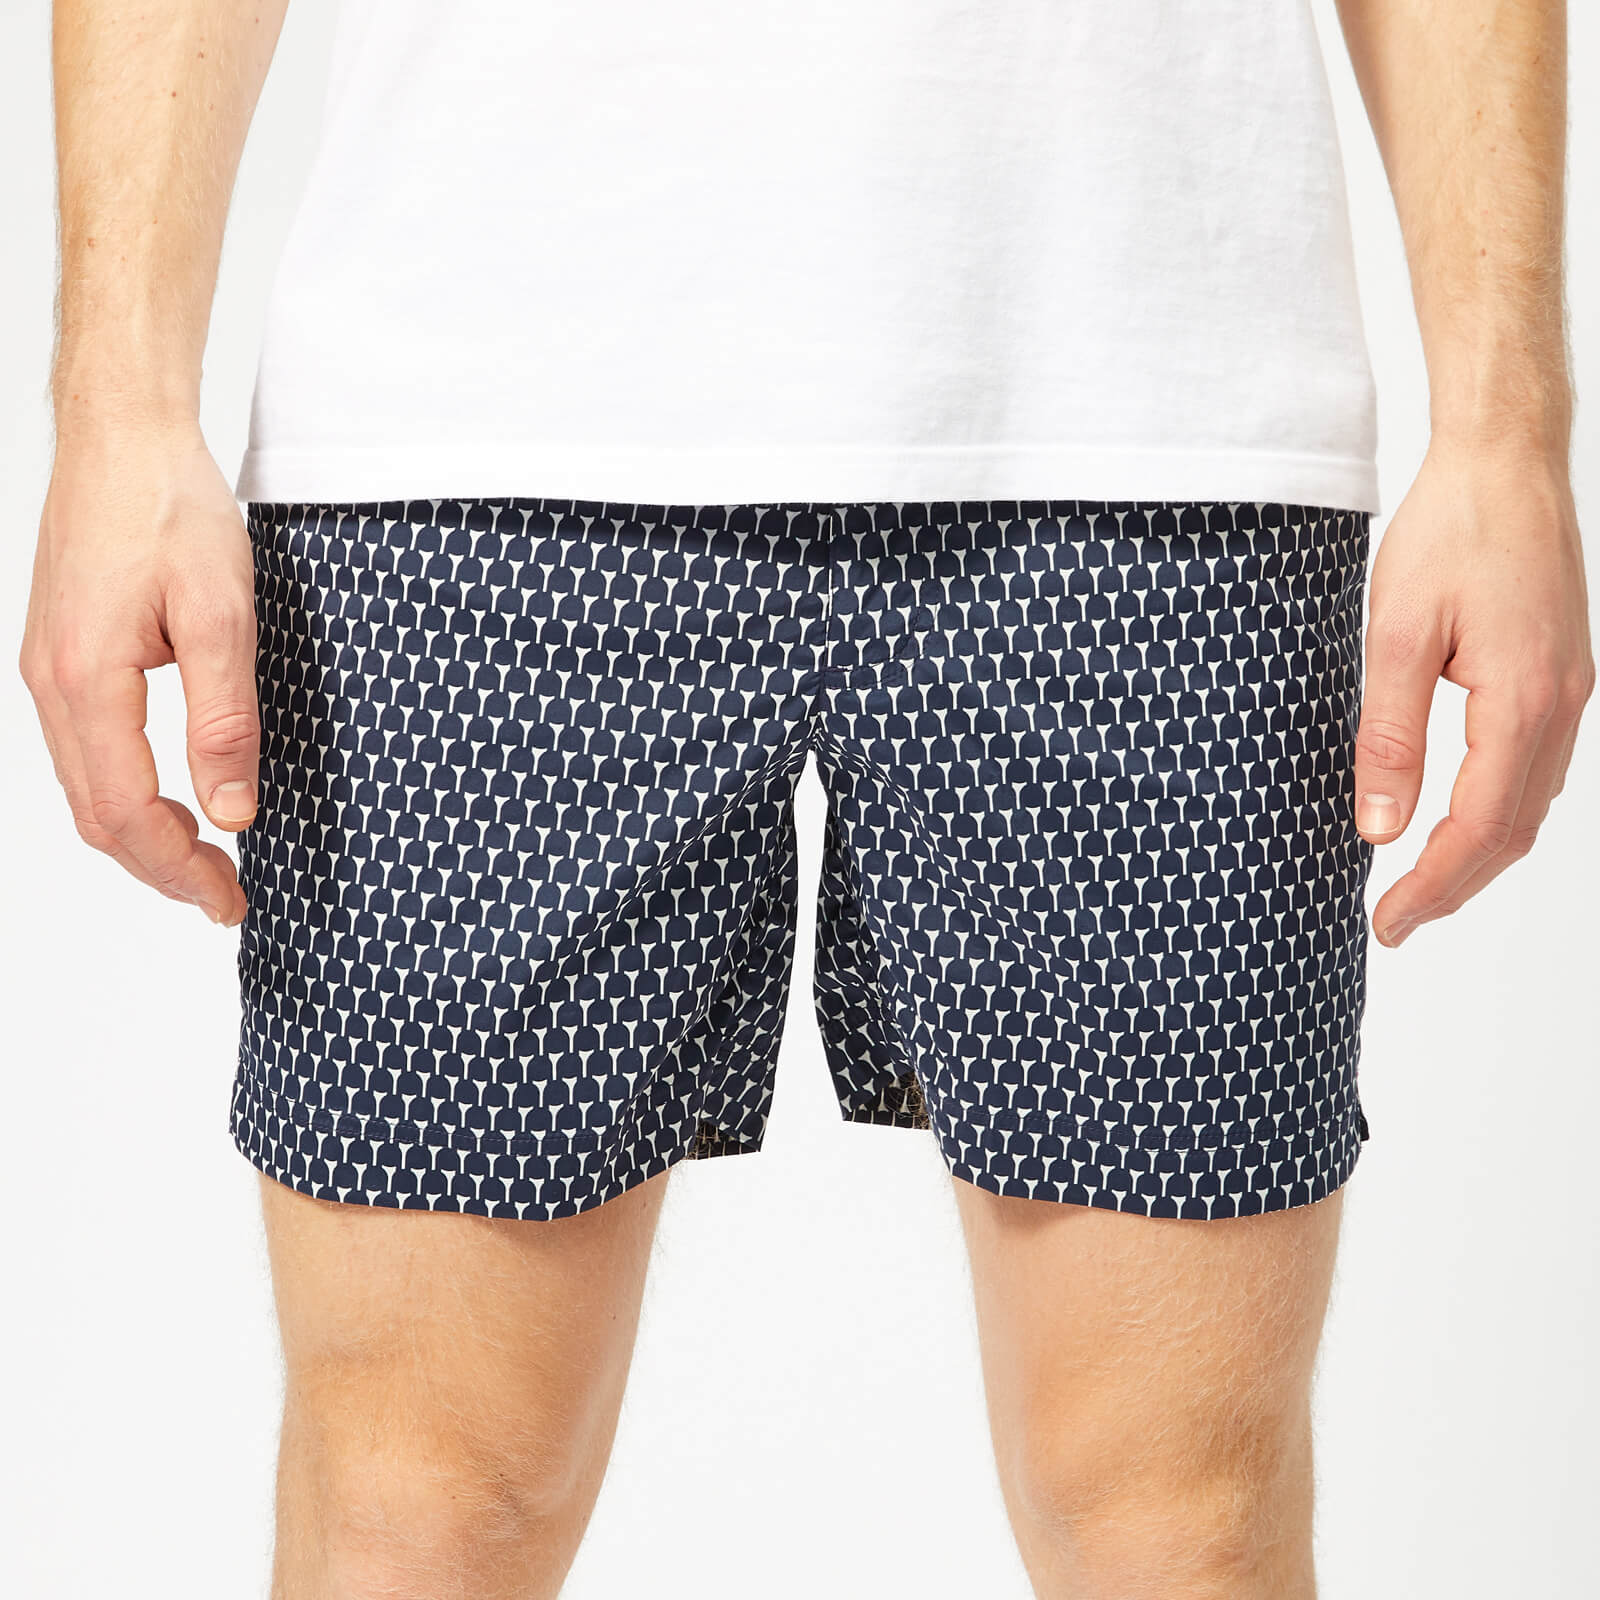 2409993b5d Orlebar Brown Men's Bulldog Sport Cerchio Swim Shorts - Navy - Free UK  Delivery over £50